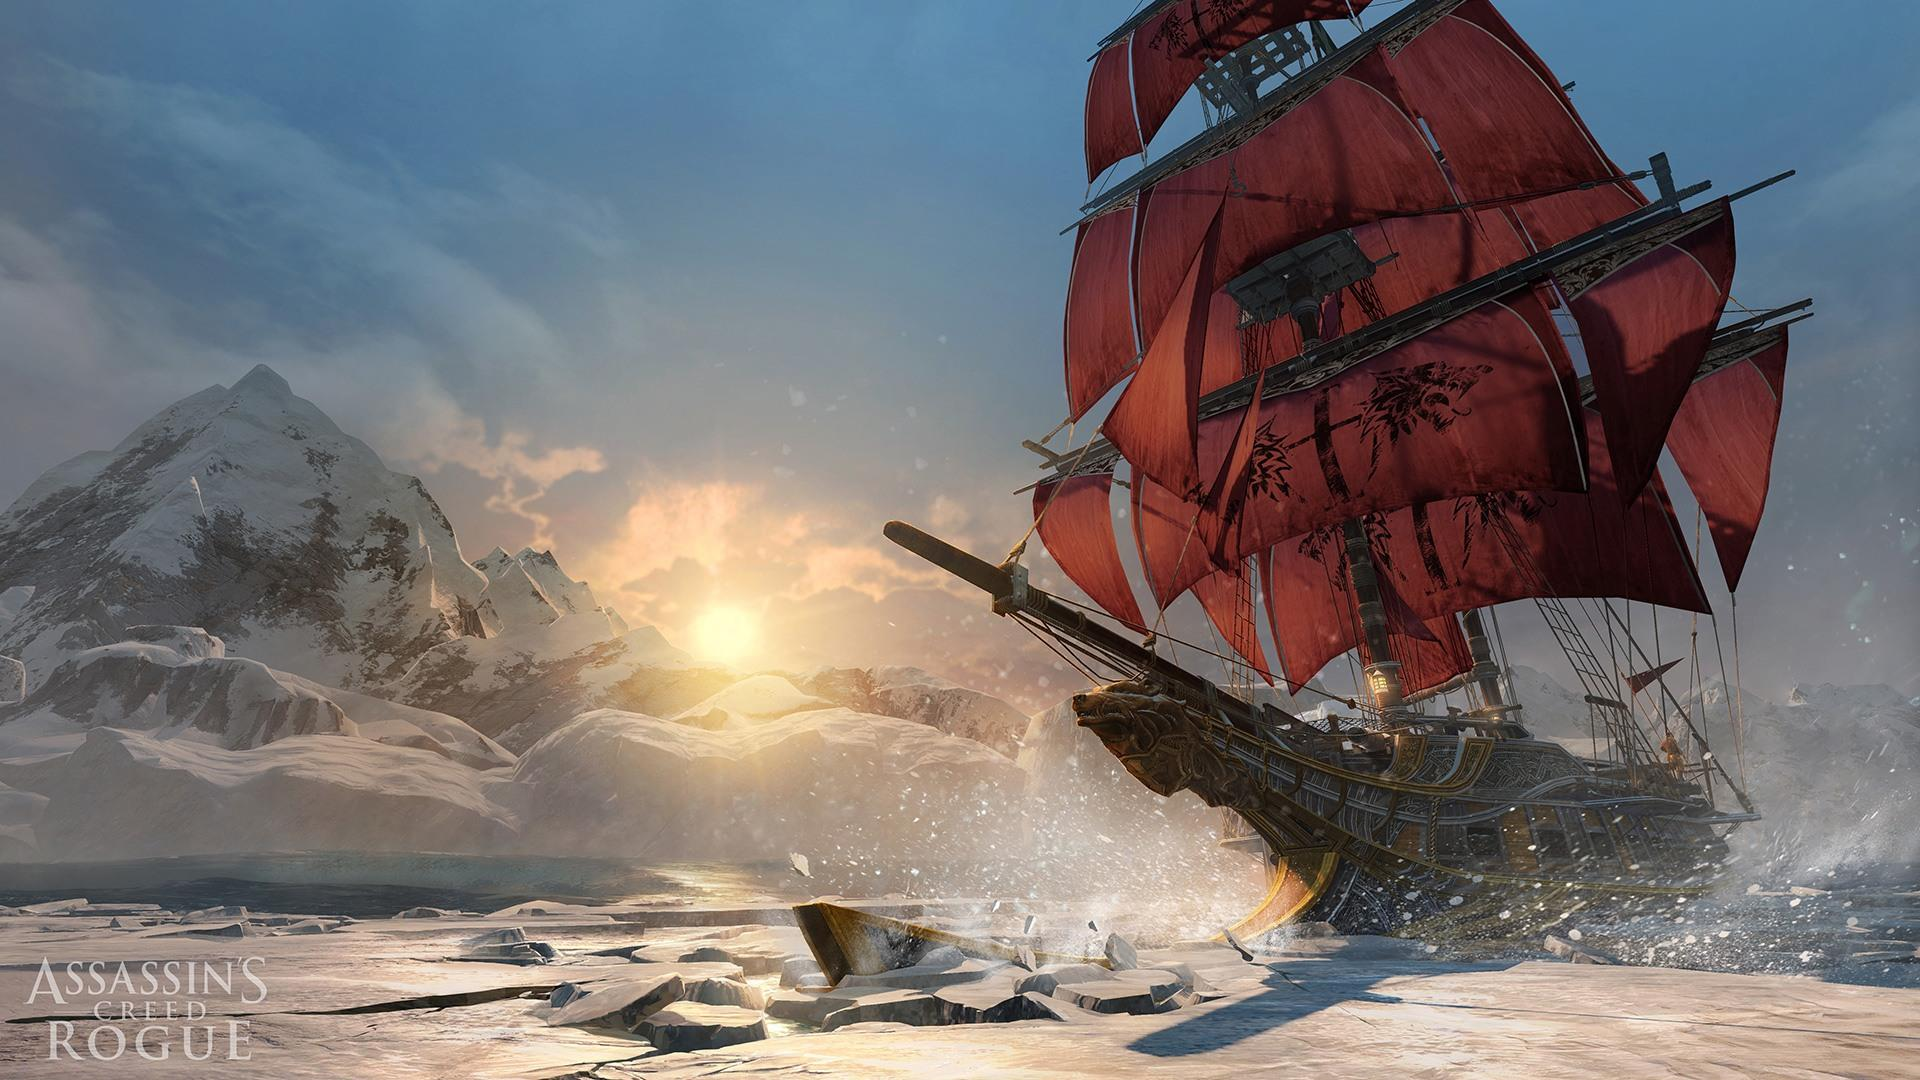 Assassins_Creed_Rogue_Icesheet-breaking-sunset_1920-1409604903115